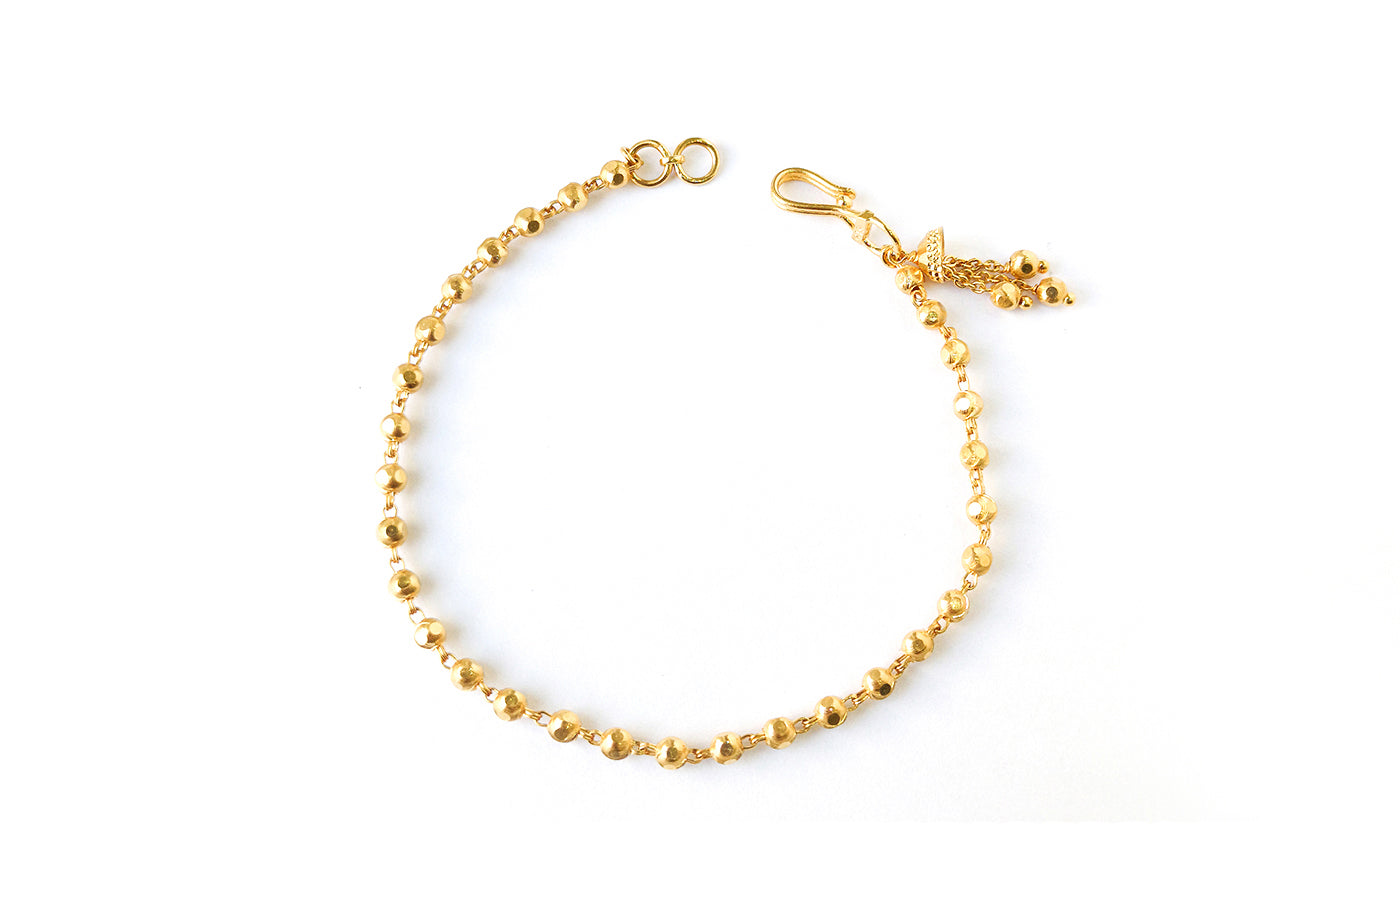 22ct Gold Bracelet with Diamond Cut Design and Drop Charm on Clasp (4.8g) LBR-7613